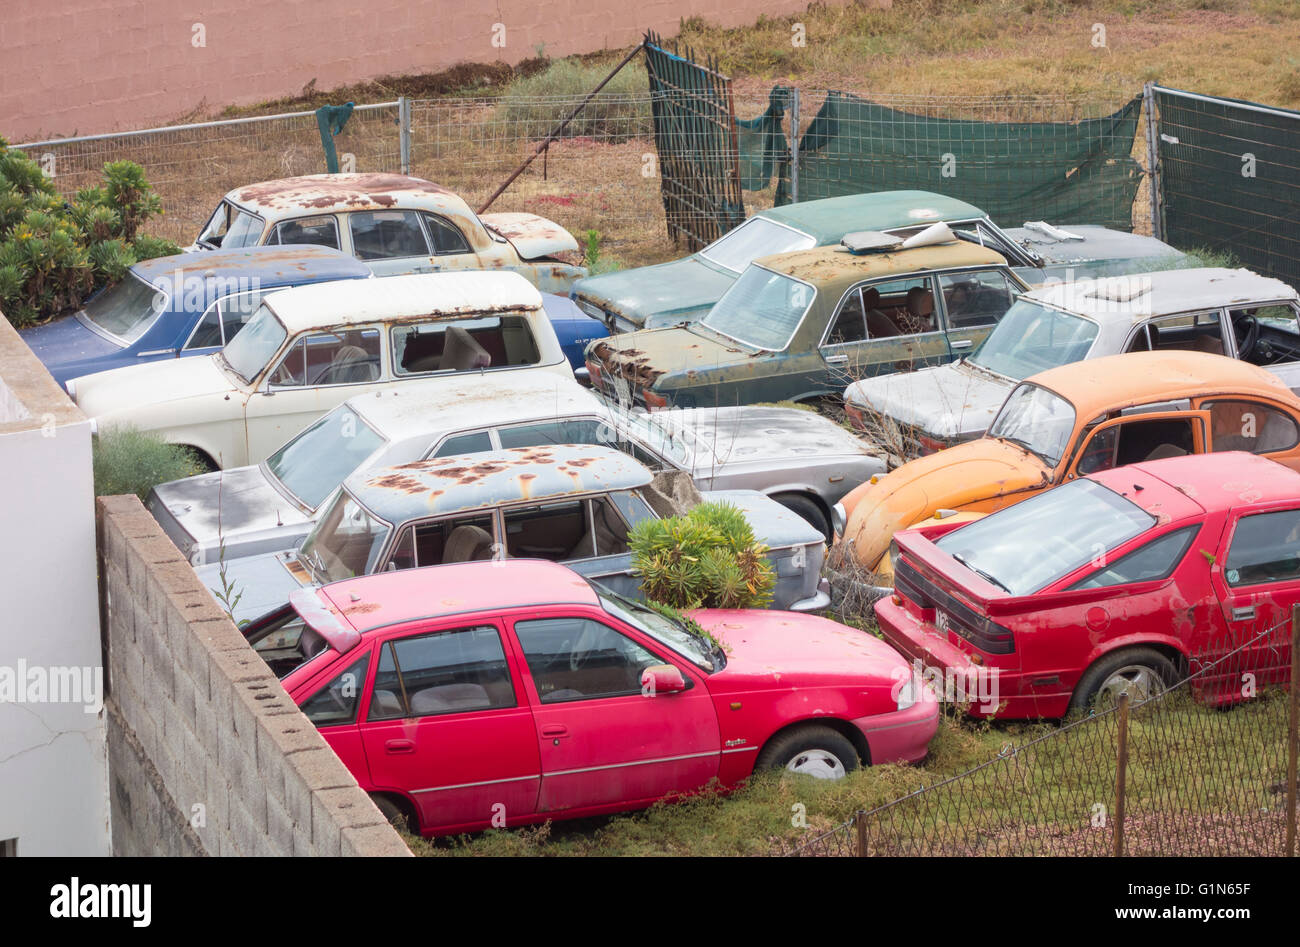 Rusting old cars in compound behind large house in Spain - Stock Image